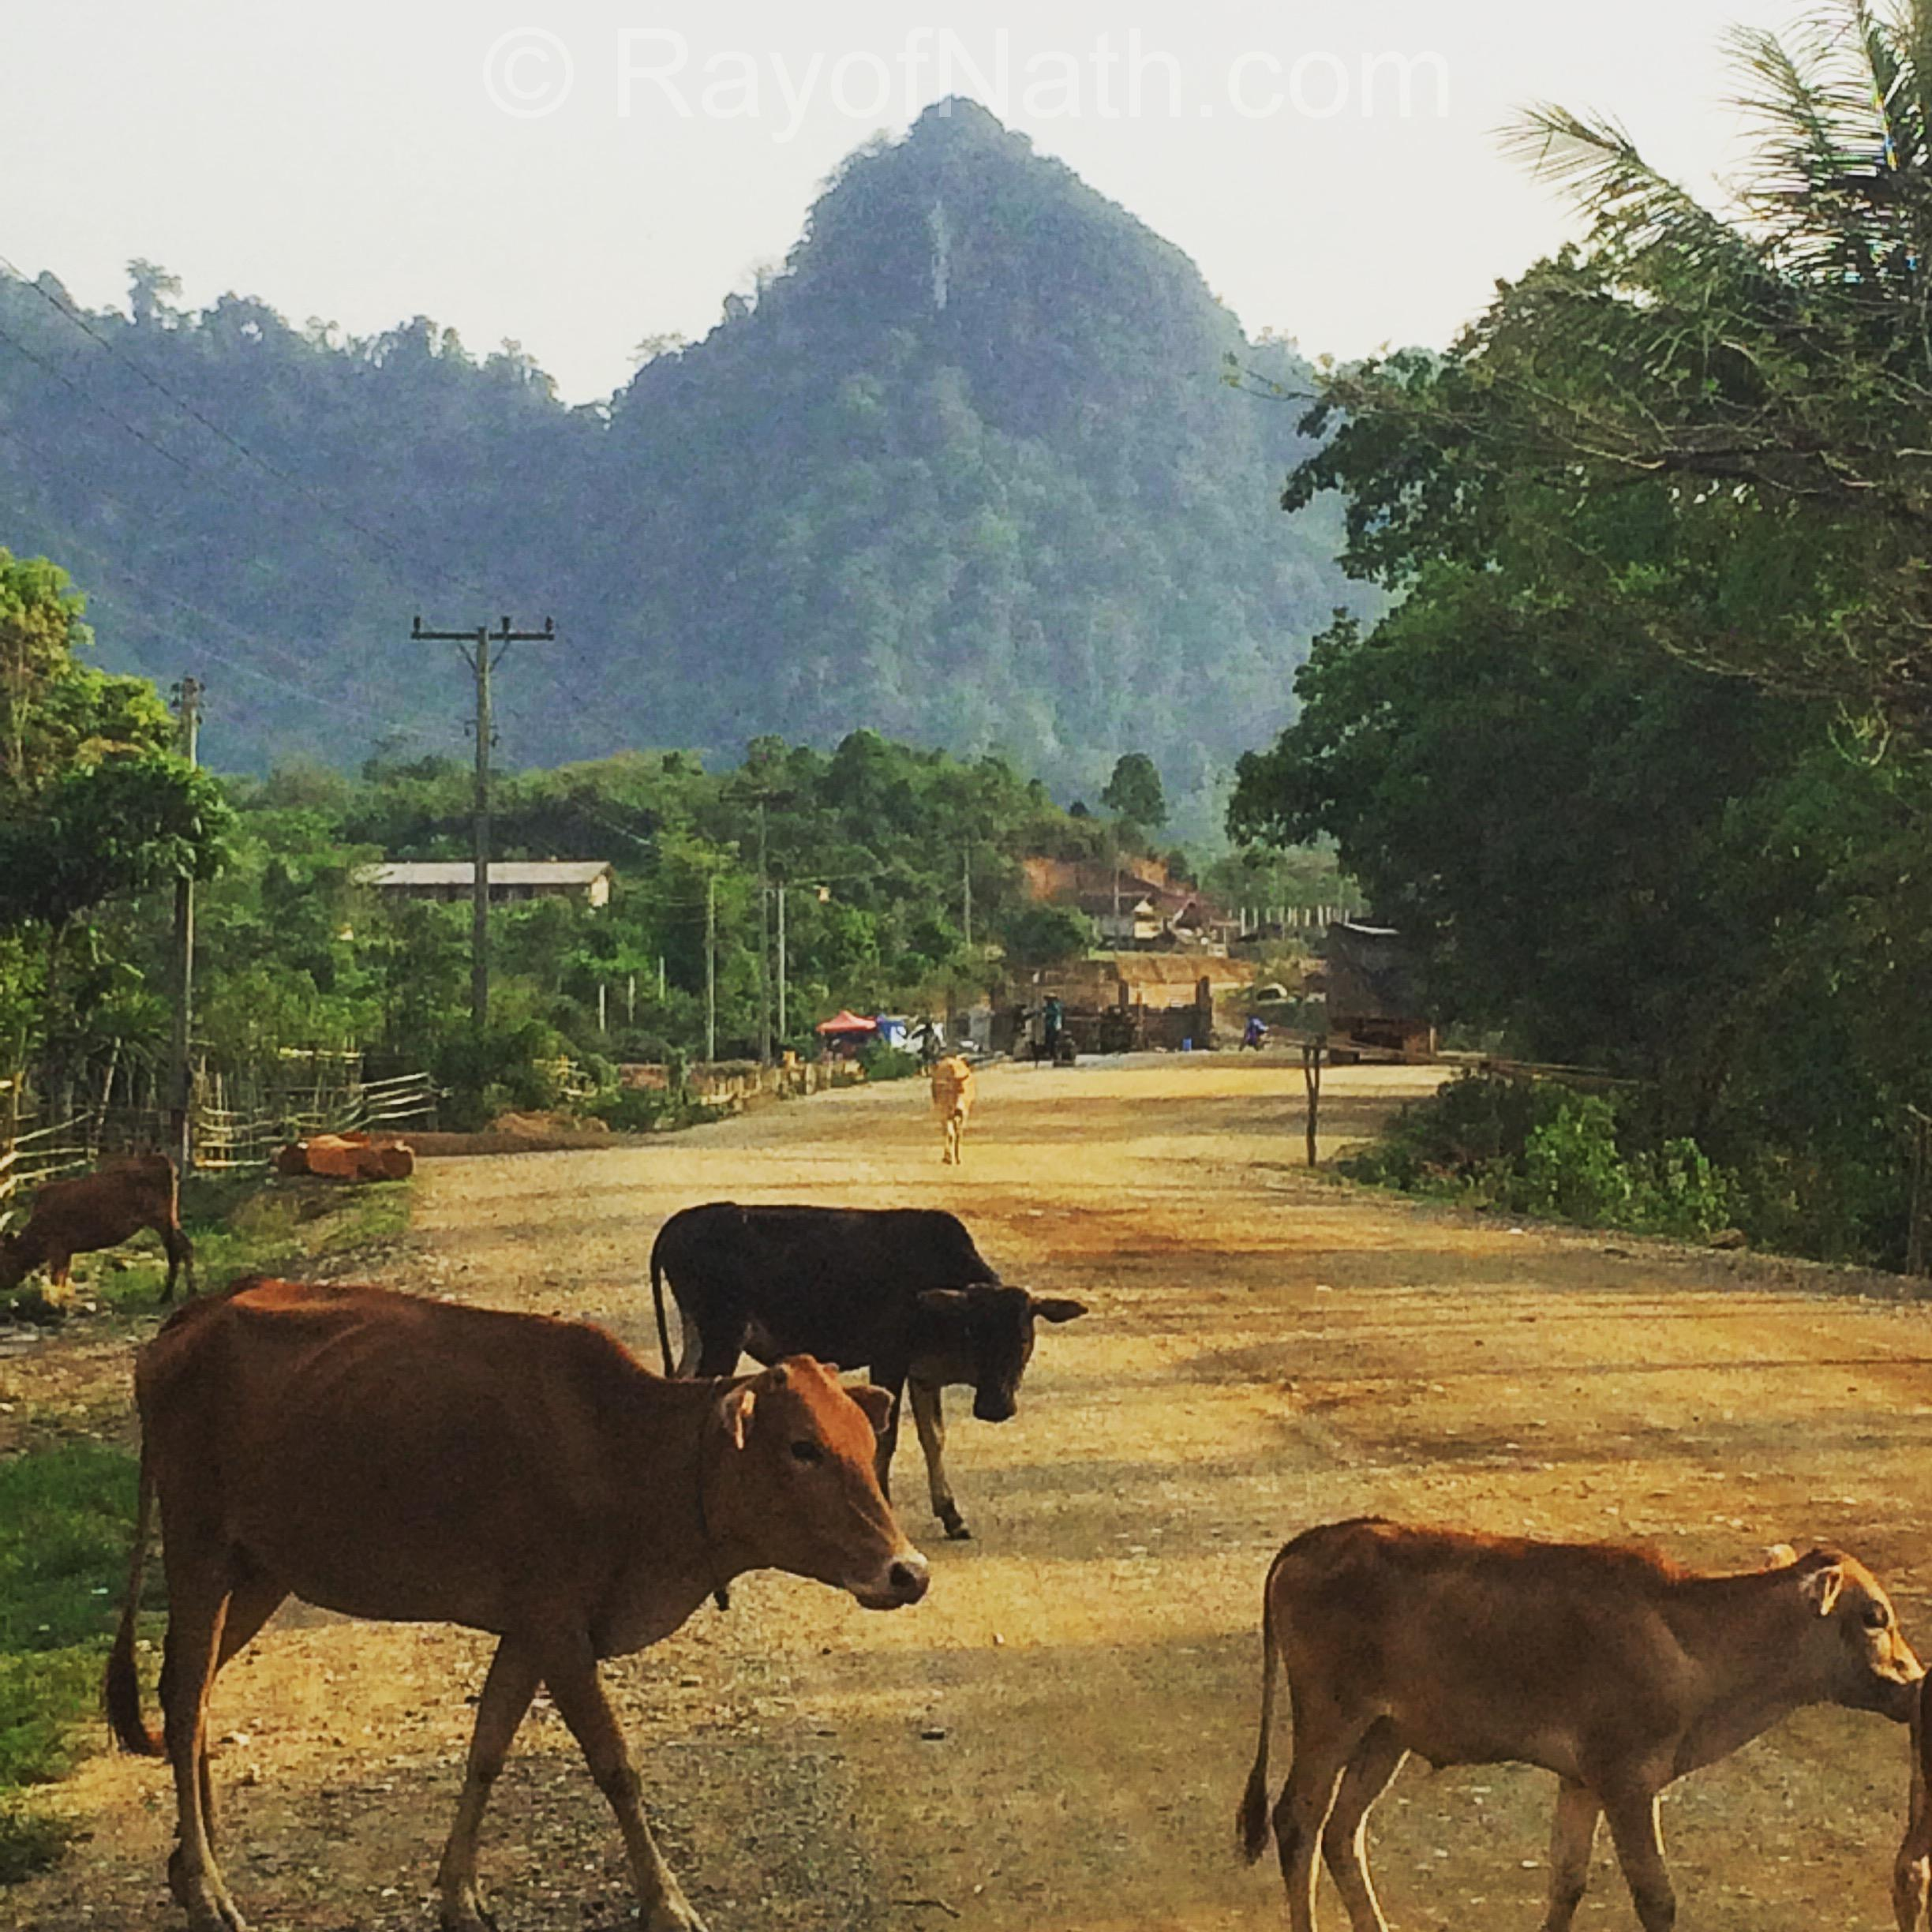 Small road in a village in Laos